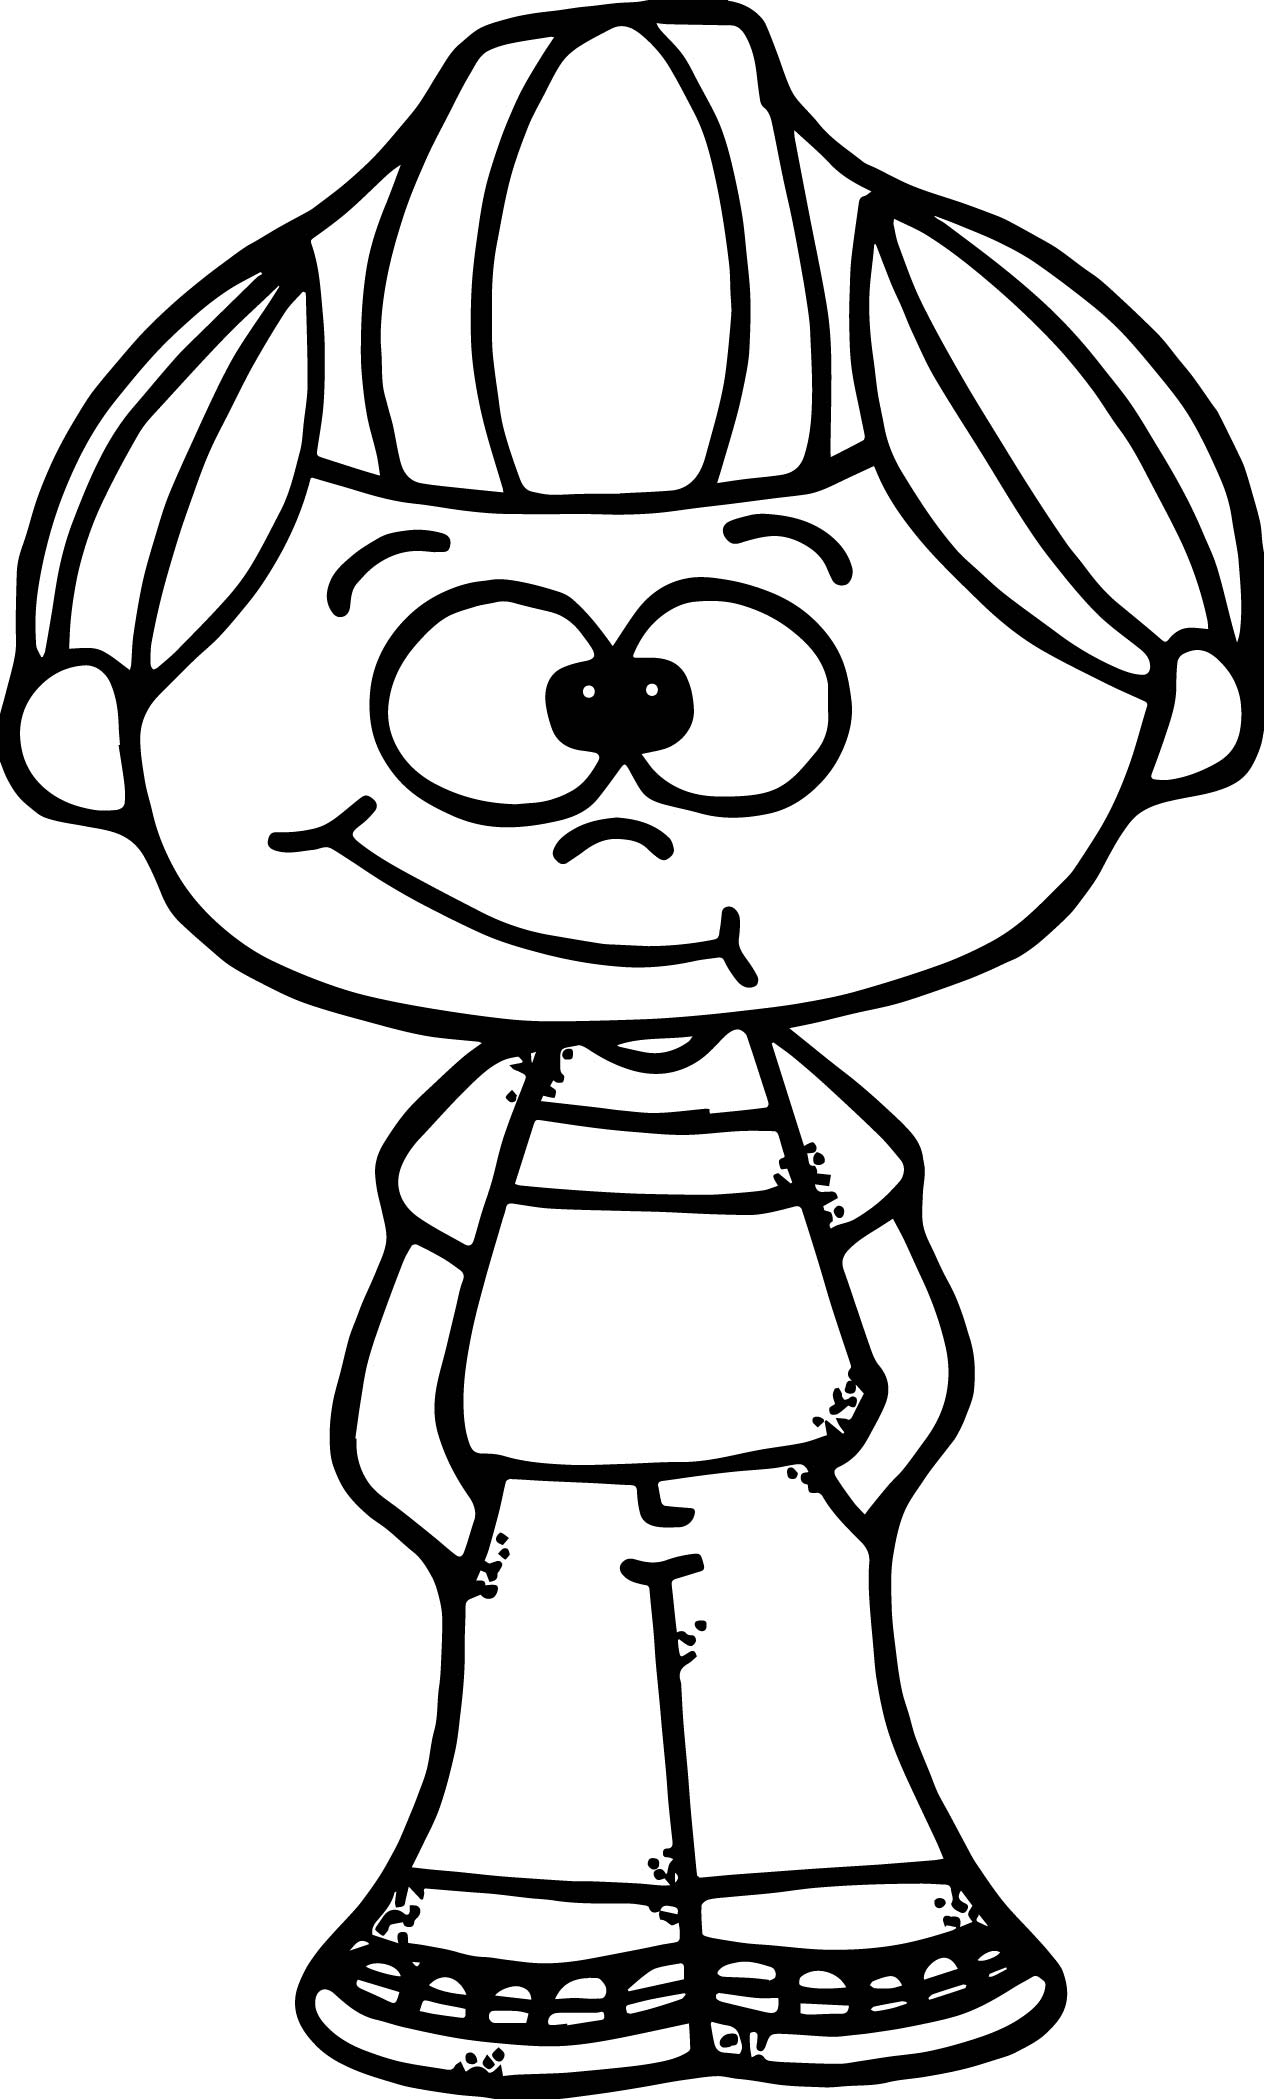 Any boy color coloring page for Coloring pages girl and boy